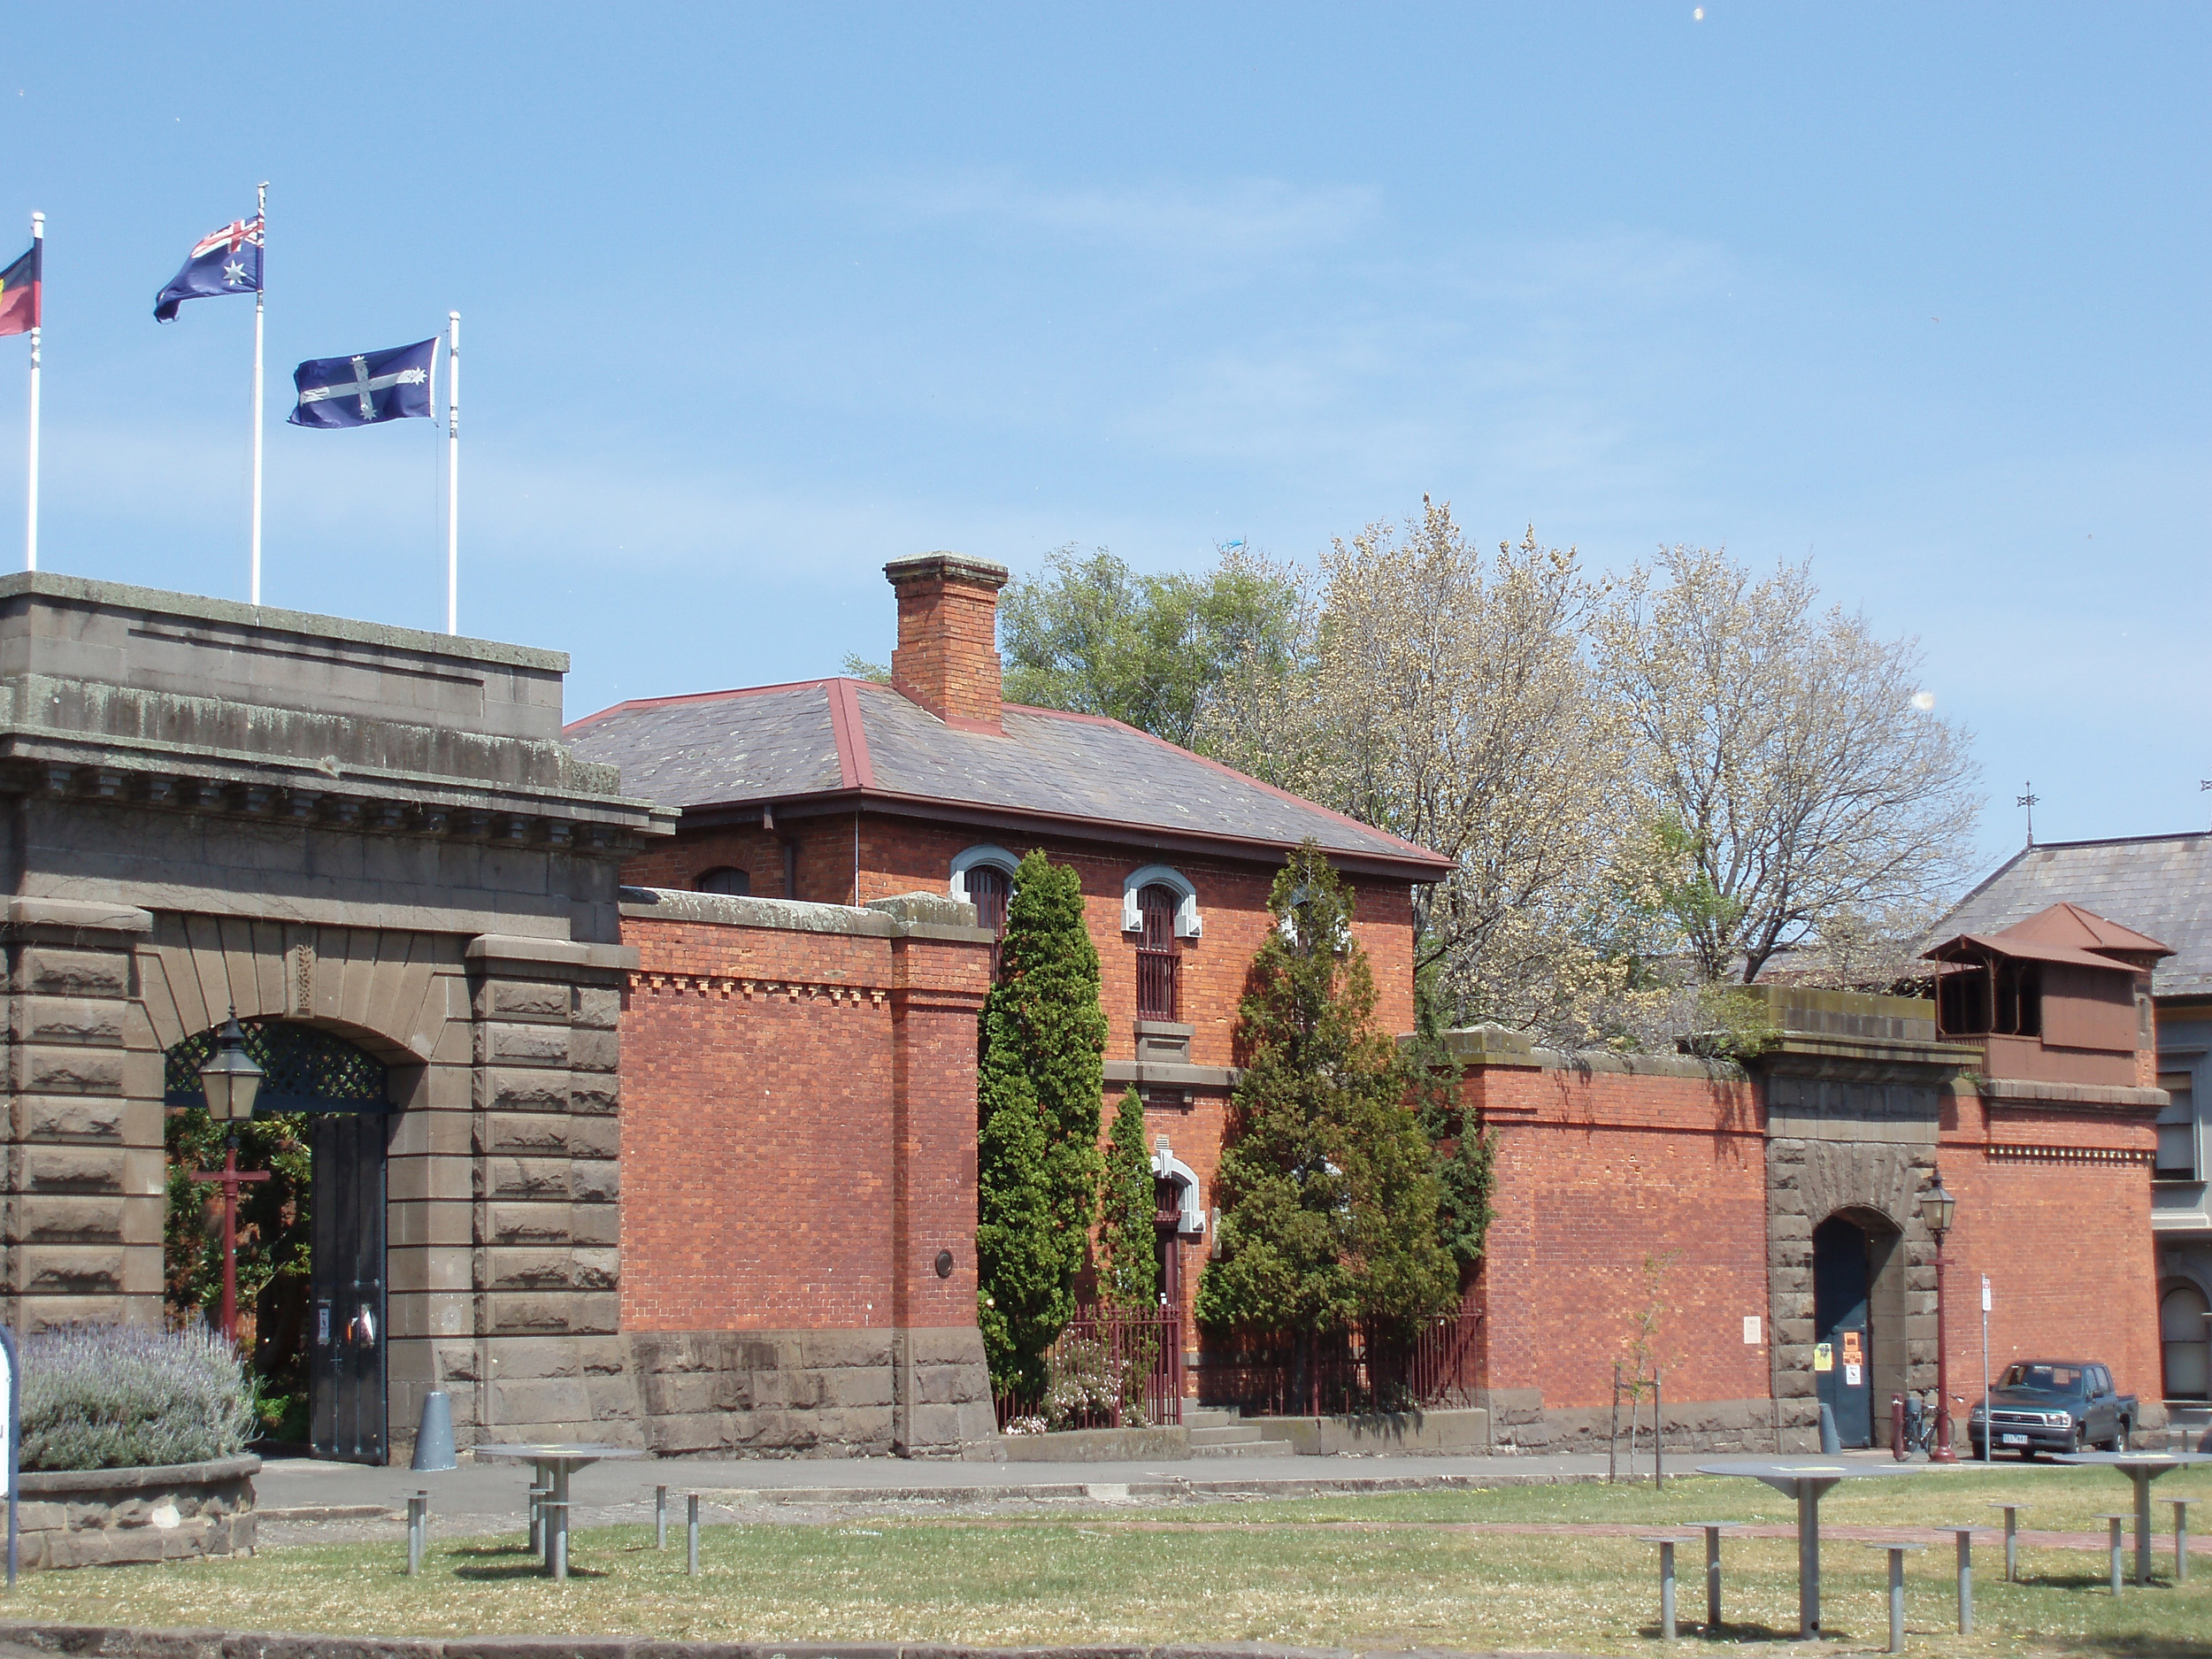 old ballarat gaol buildings and entrance gate, building was started in 1856